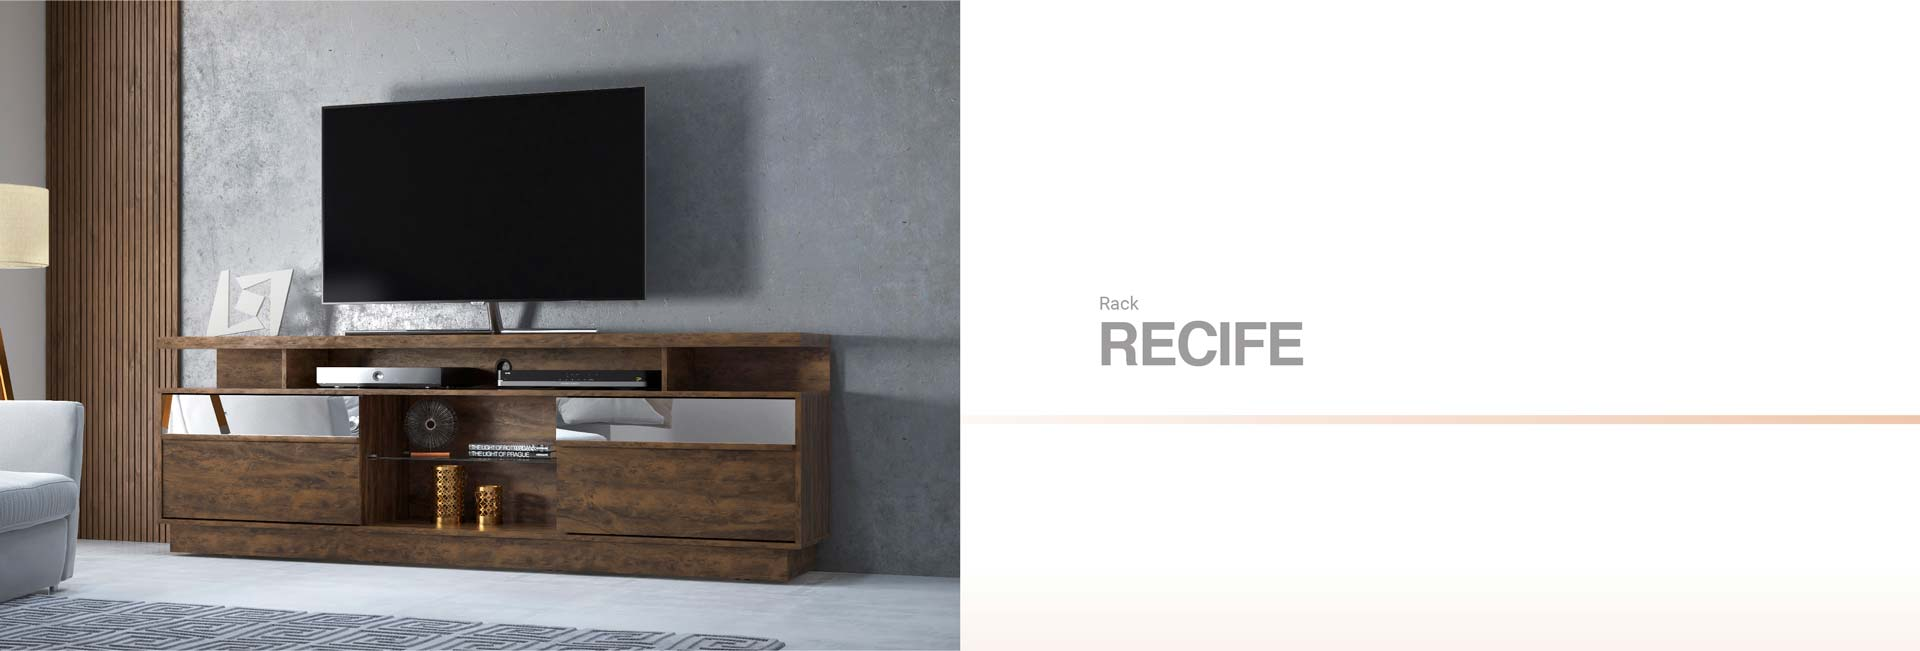 Meuble TV RACK RECIFE